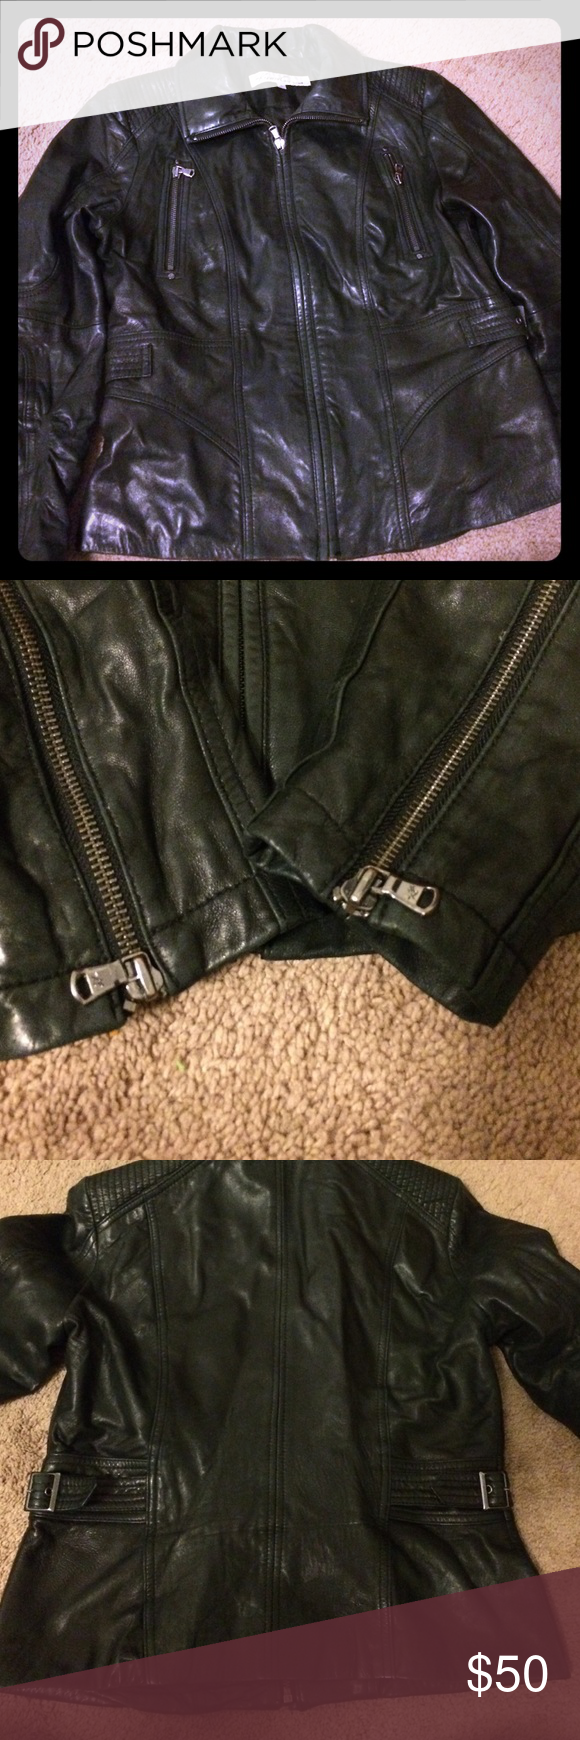 Leather jacket lining polyester and leather Leather jacket black zippers on the top breast  lining zippers on the sleeves cinched waist that buttons zipper in the inside for wallet or whatever you may want to put in it, small deformity on the bottom of the sleeve can be fixed if taken to the cleaners🤗💖💖 Kenneth Cole Jackets & Coats